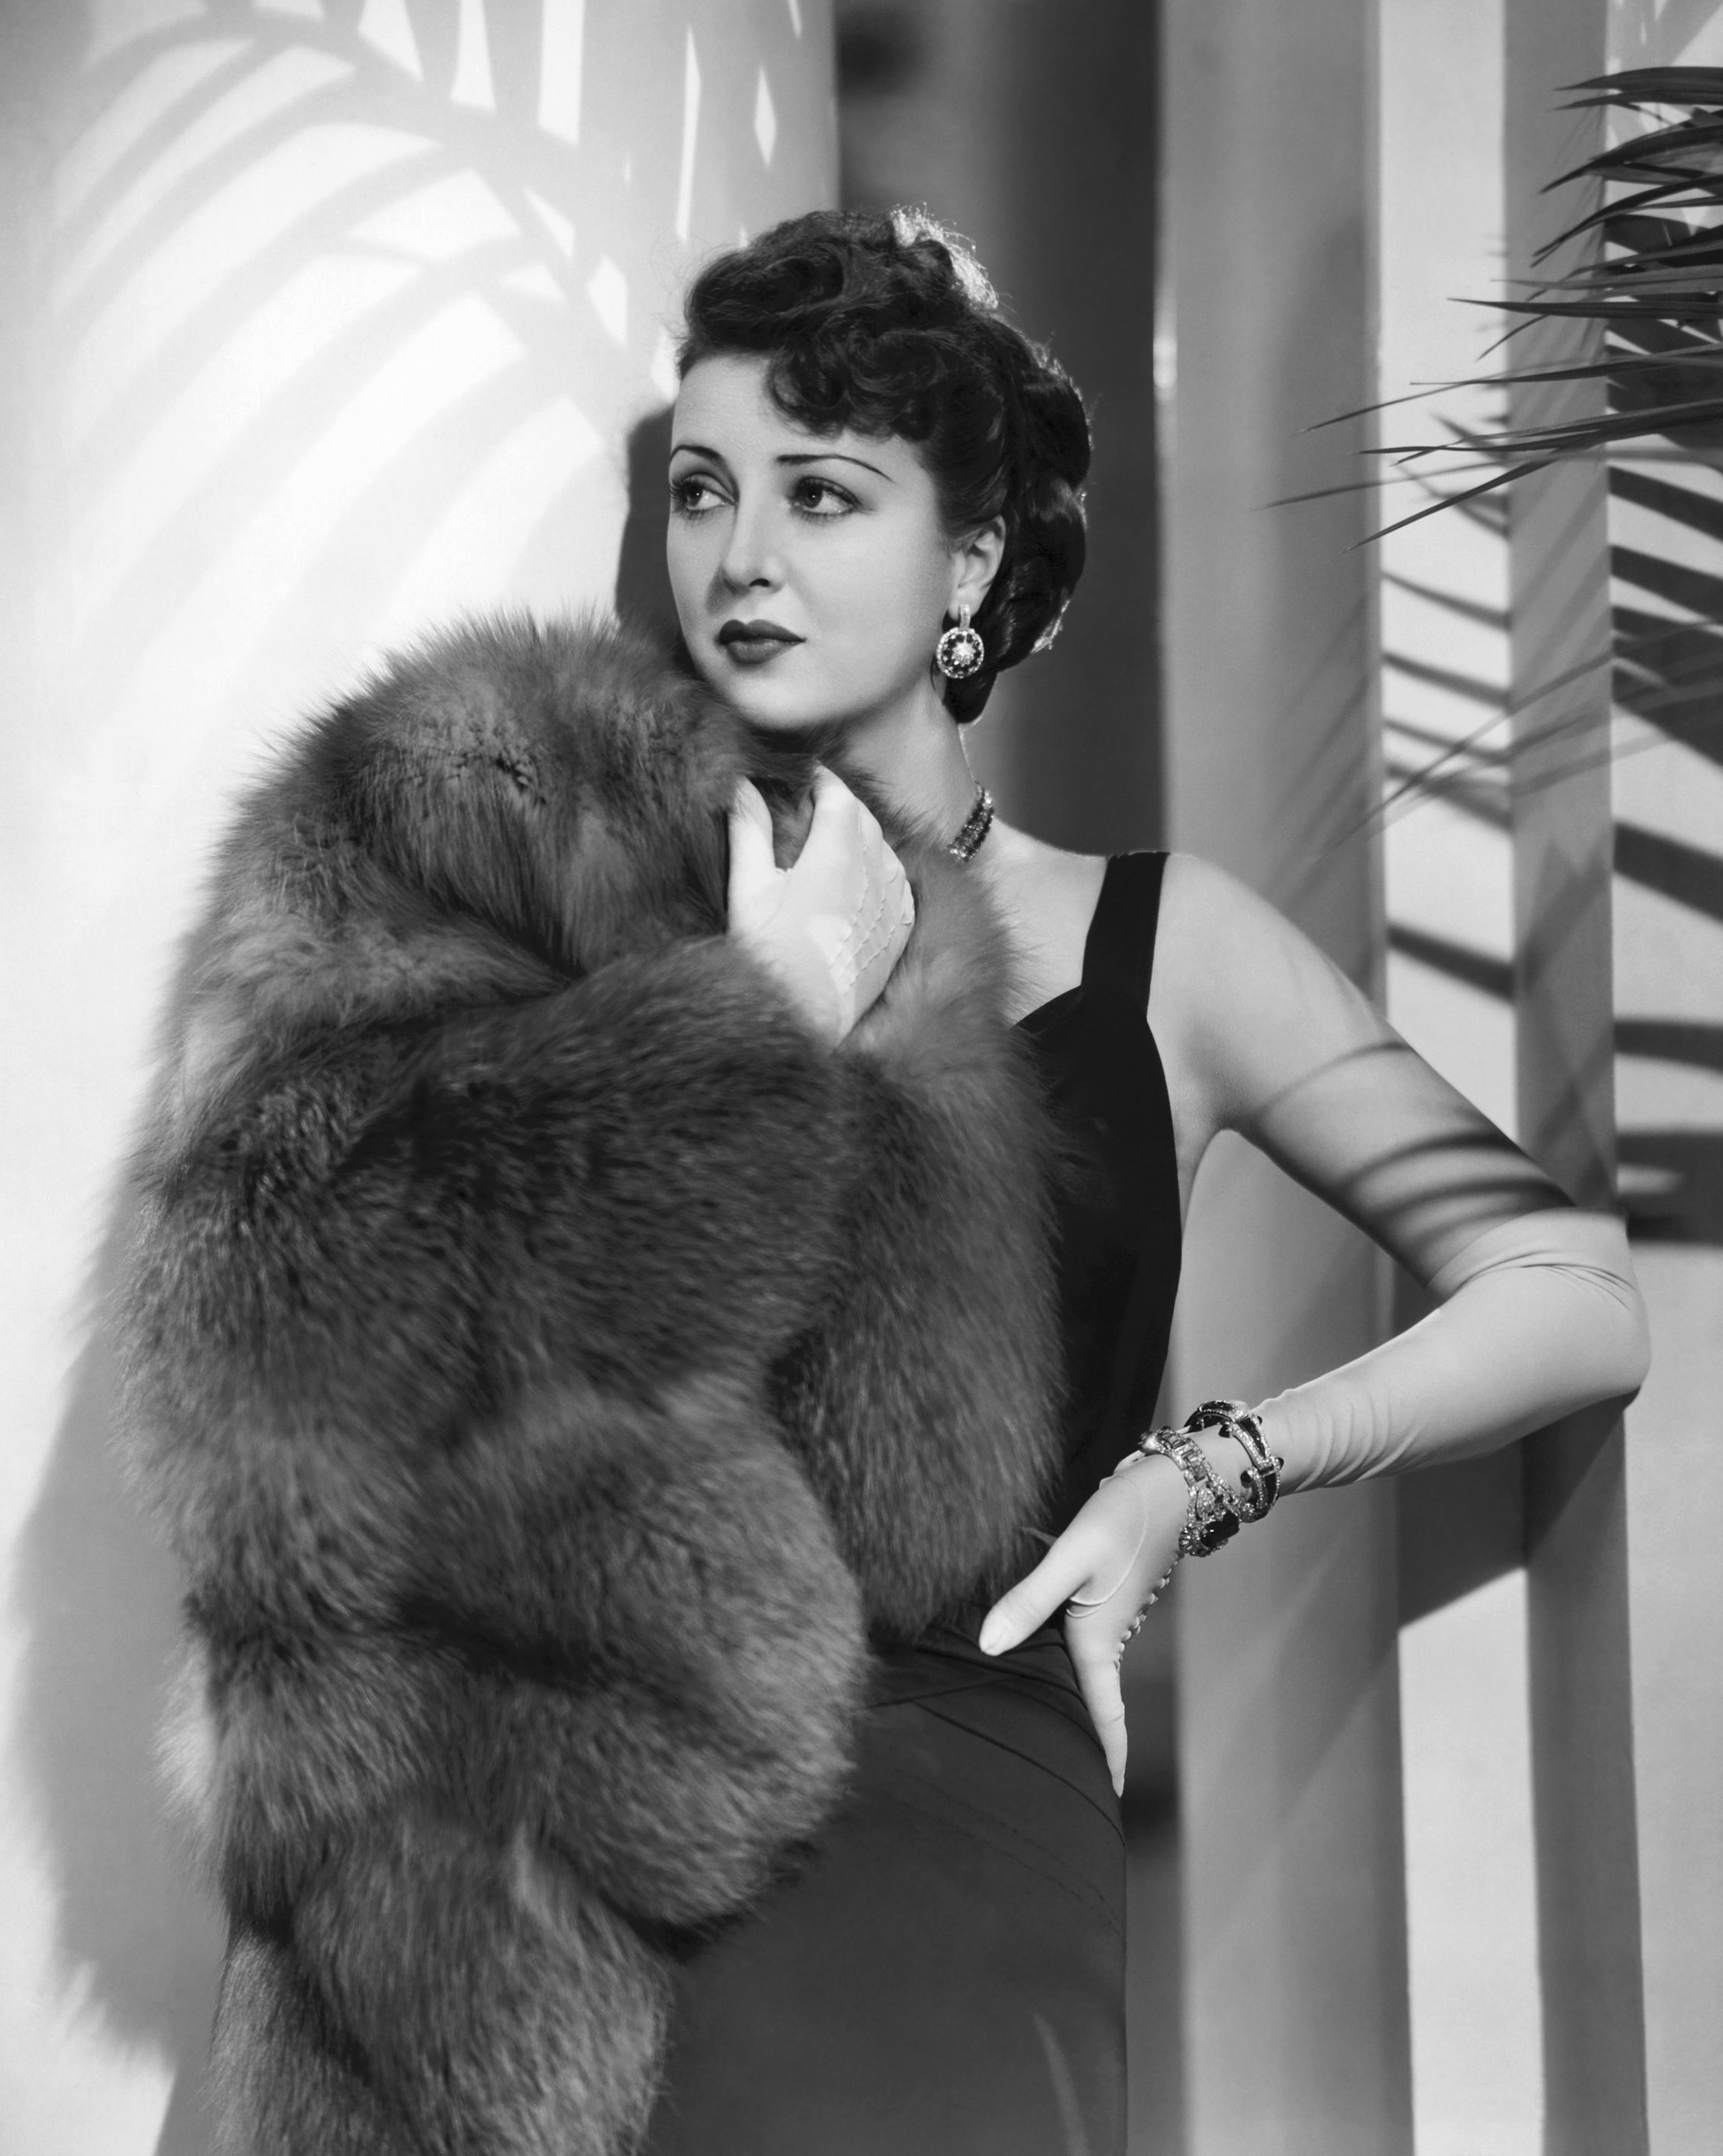 gypsy rose lee memoir